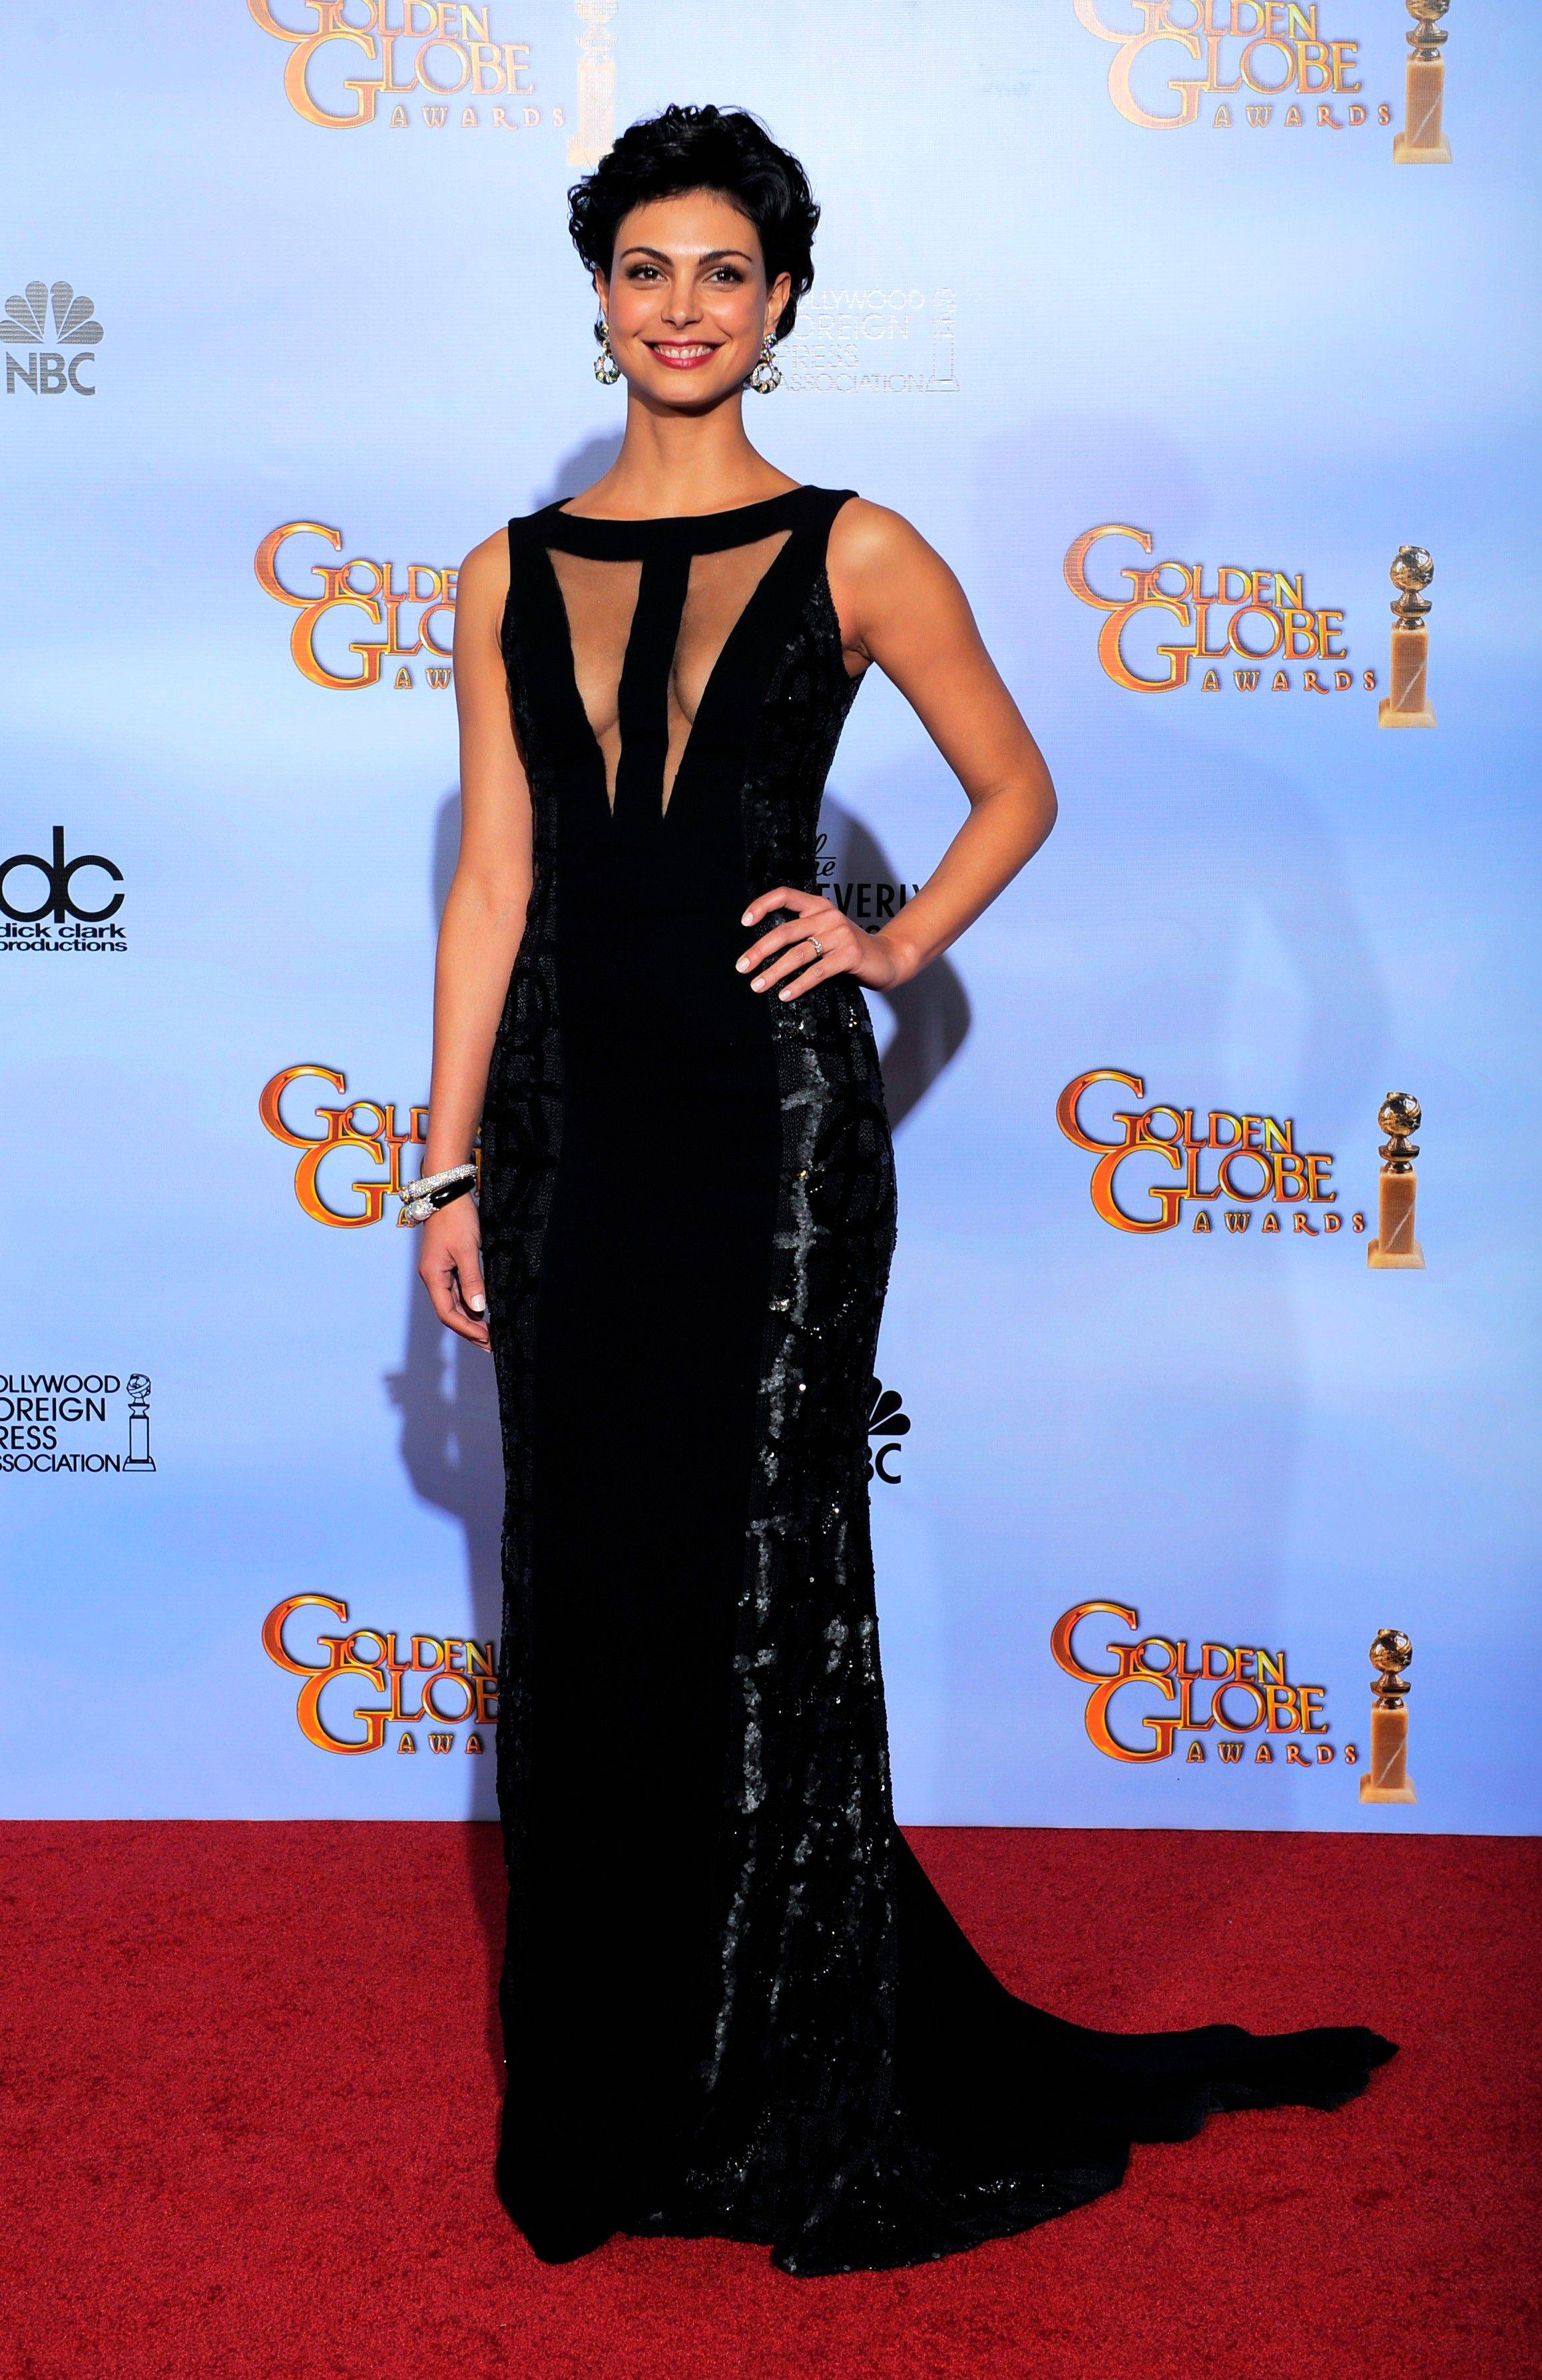 Actress Morena Baccarin poses backstage during the 69th Annual Golden Globe Awards.